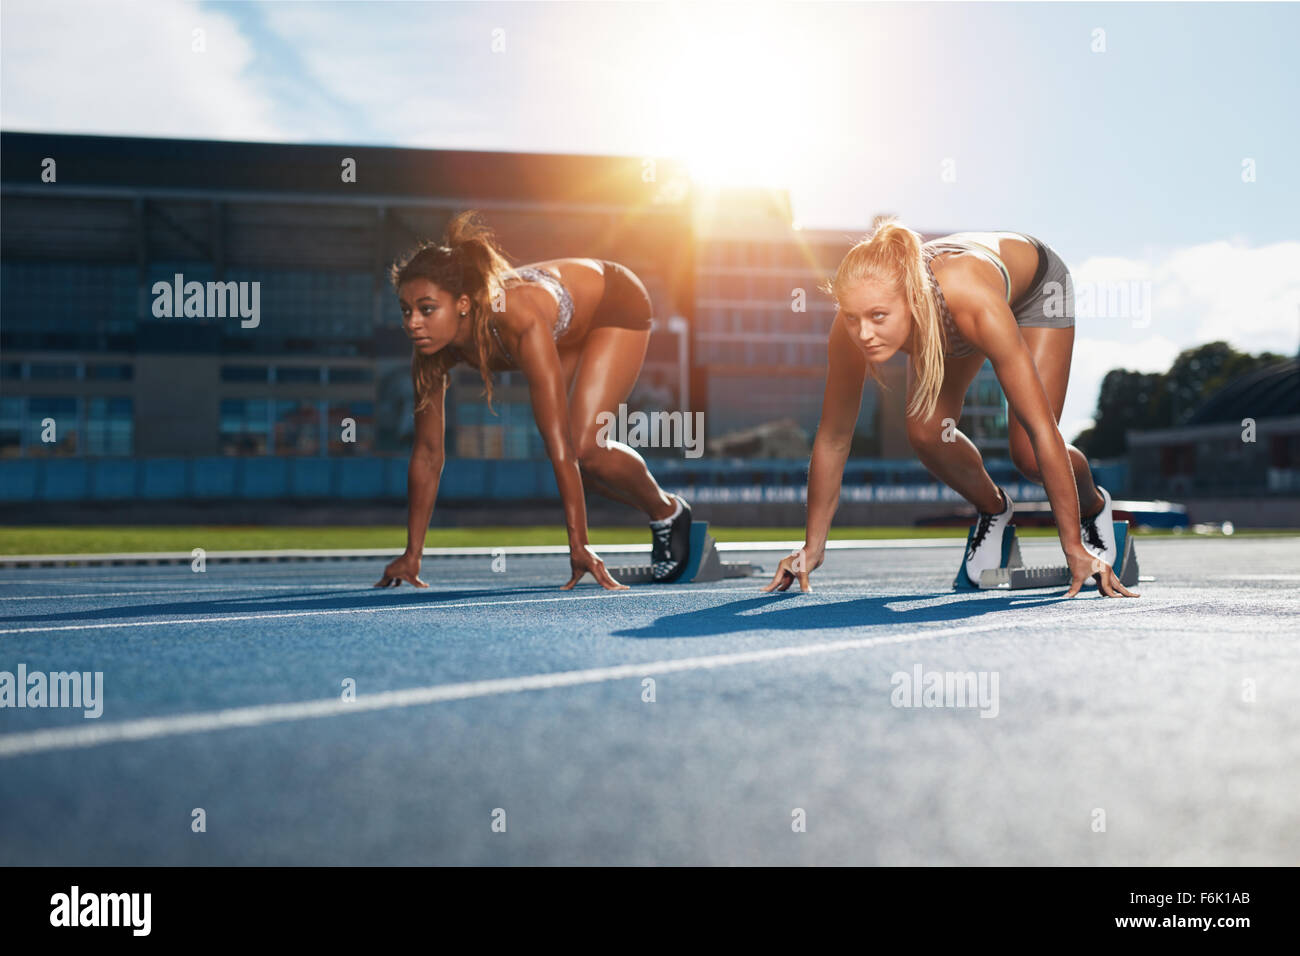 Two female athletes at starting position ready to start a race. Sprinters ready for race on racetrack with sun flare. - Stock Image